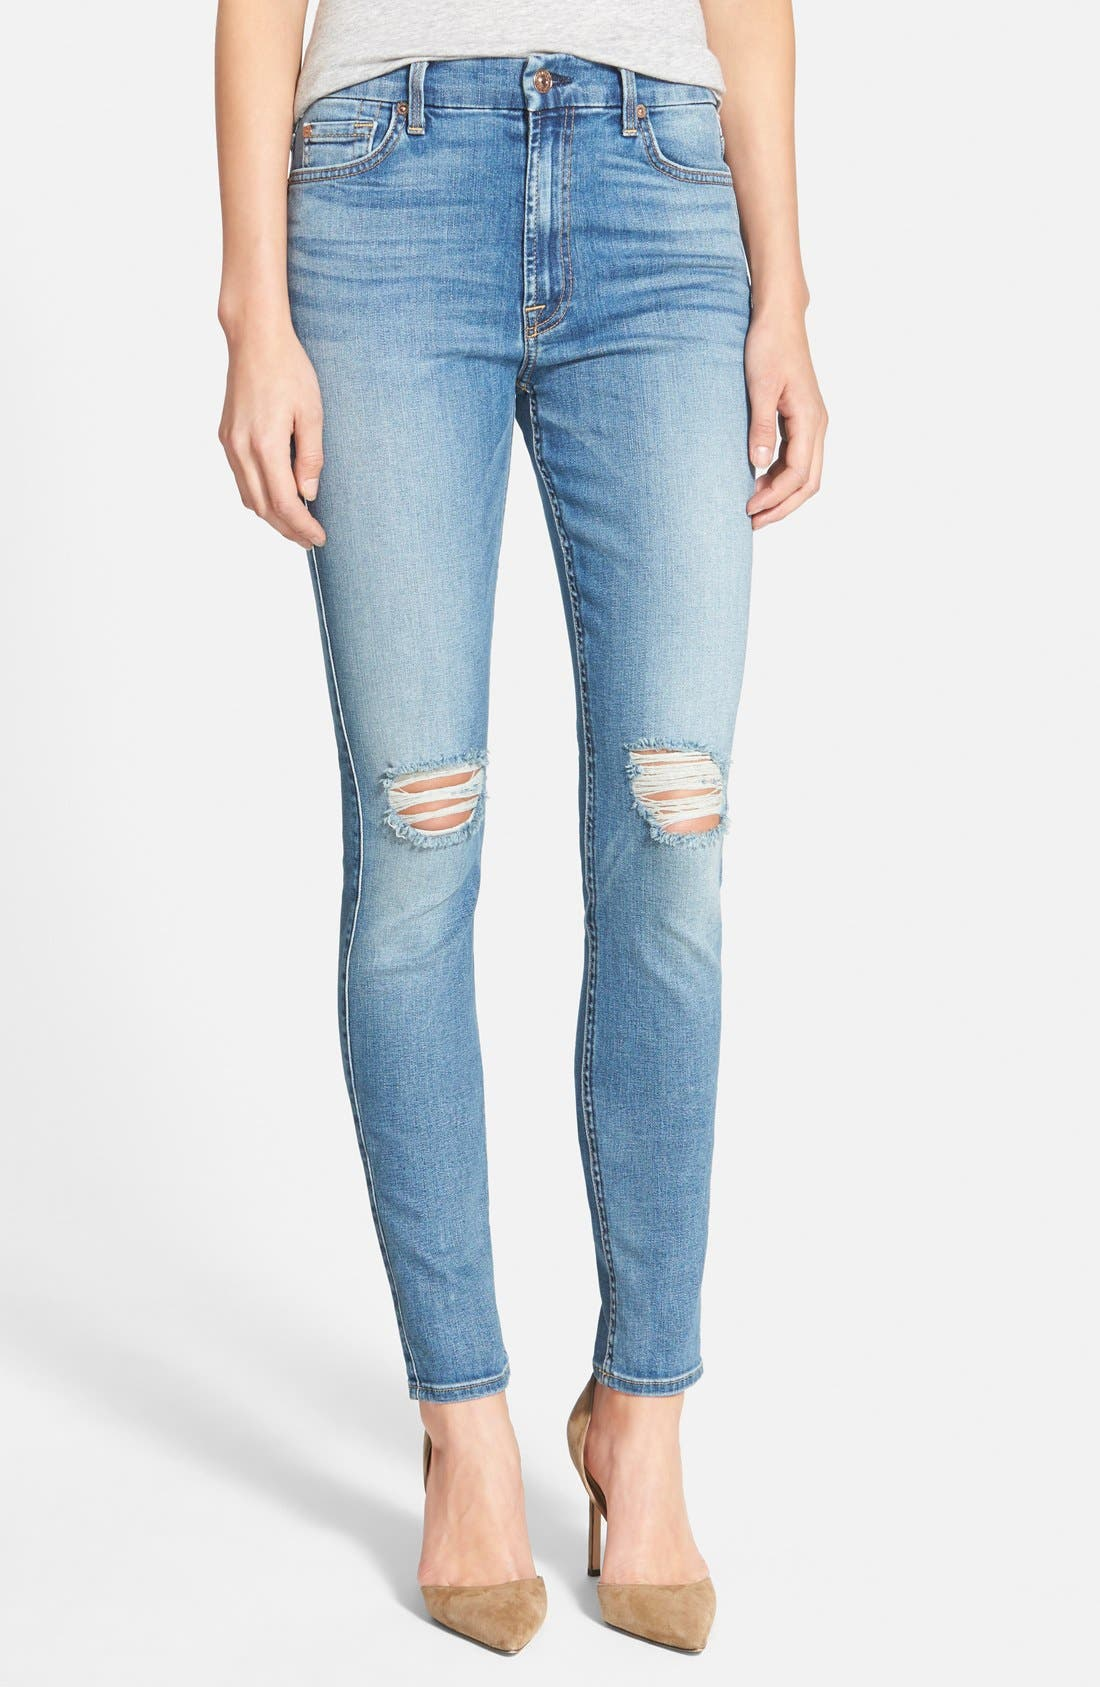 Main Image - 7 For All Mankind® High Rise Skinny Jeans (Slone Heritage Medium light 2)